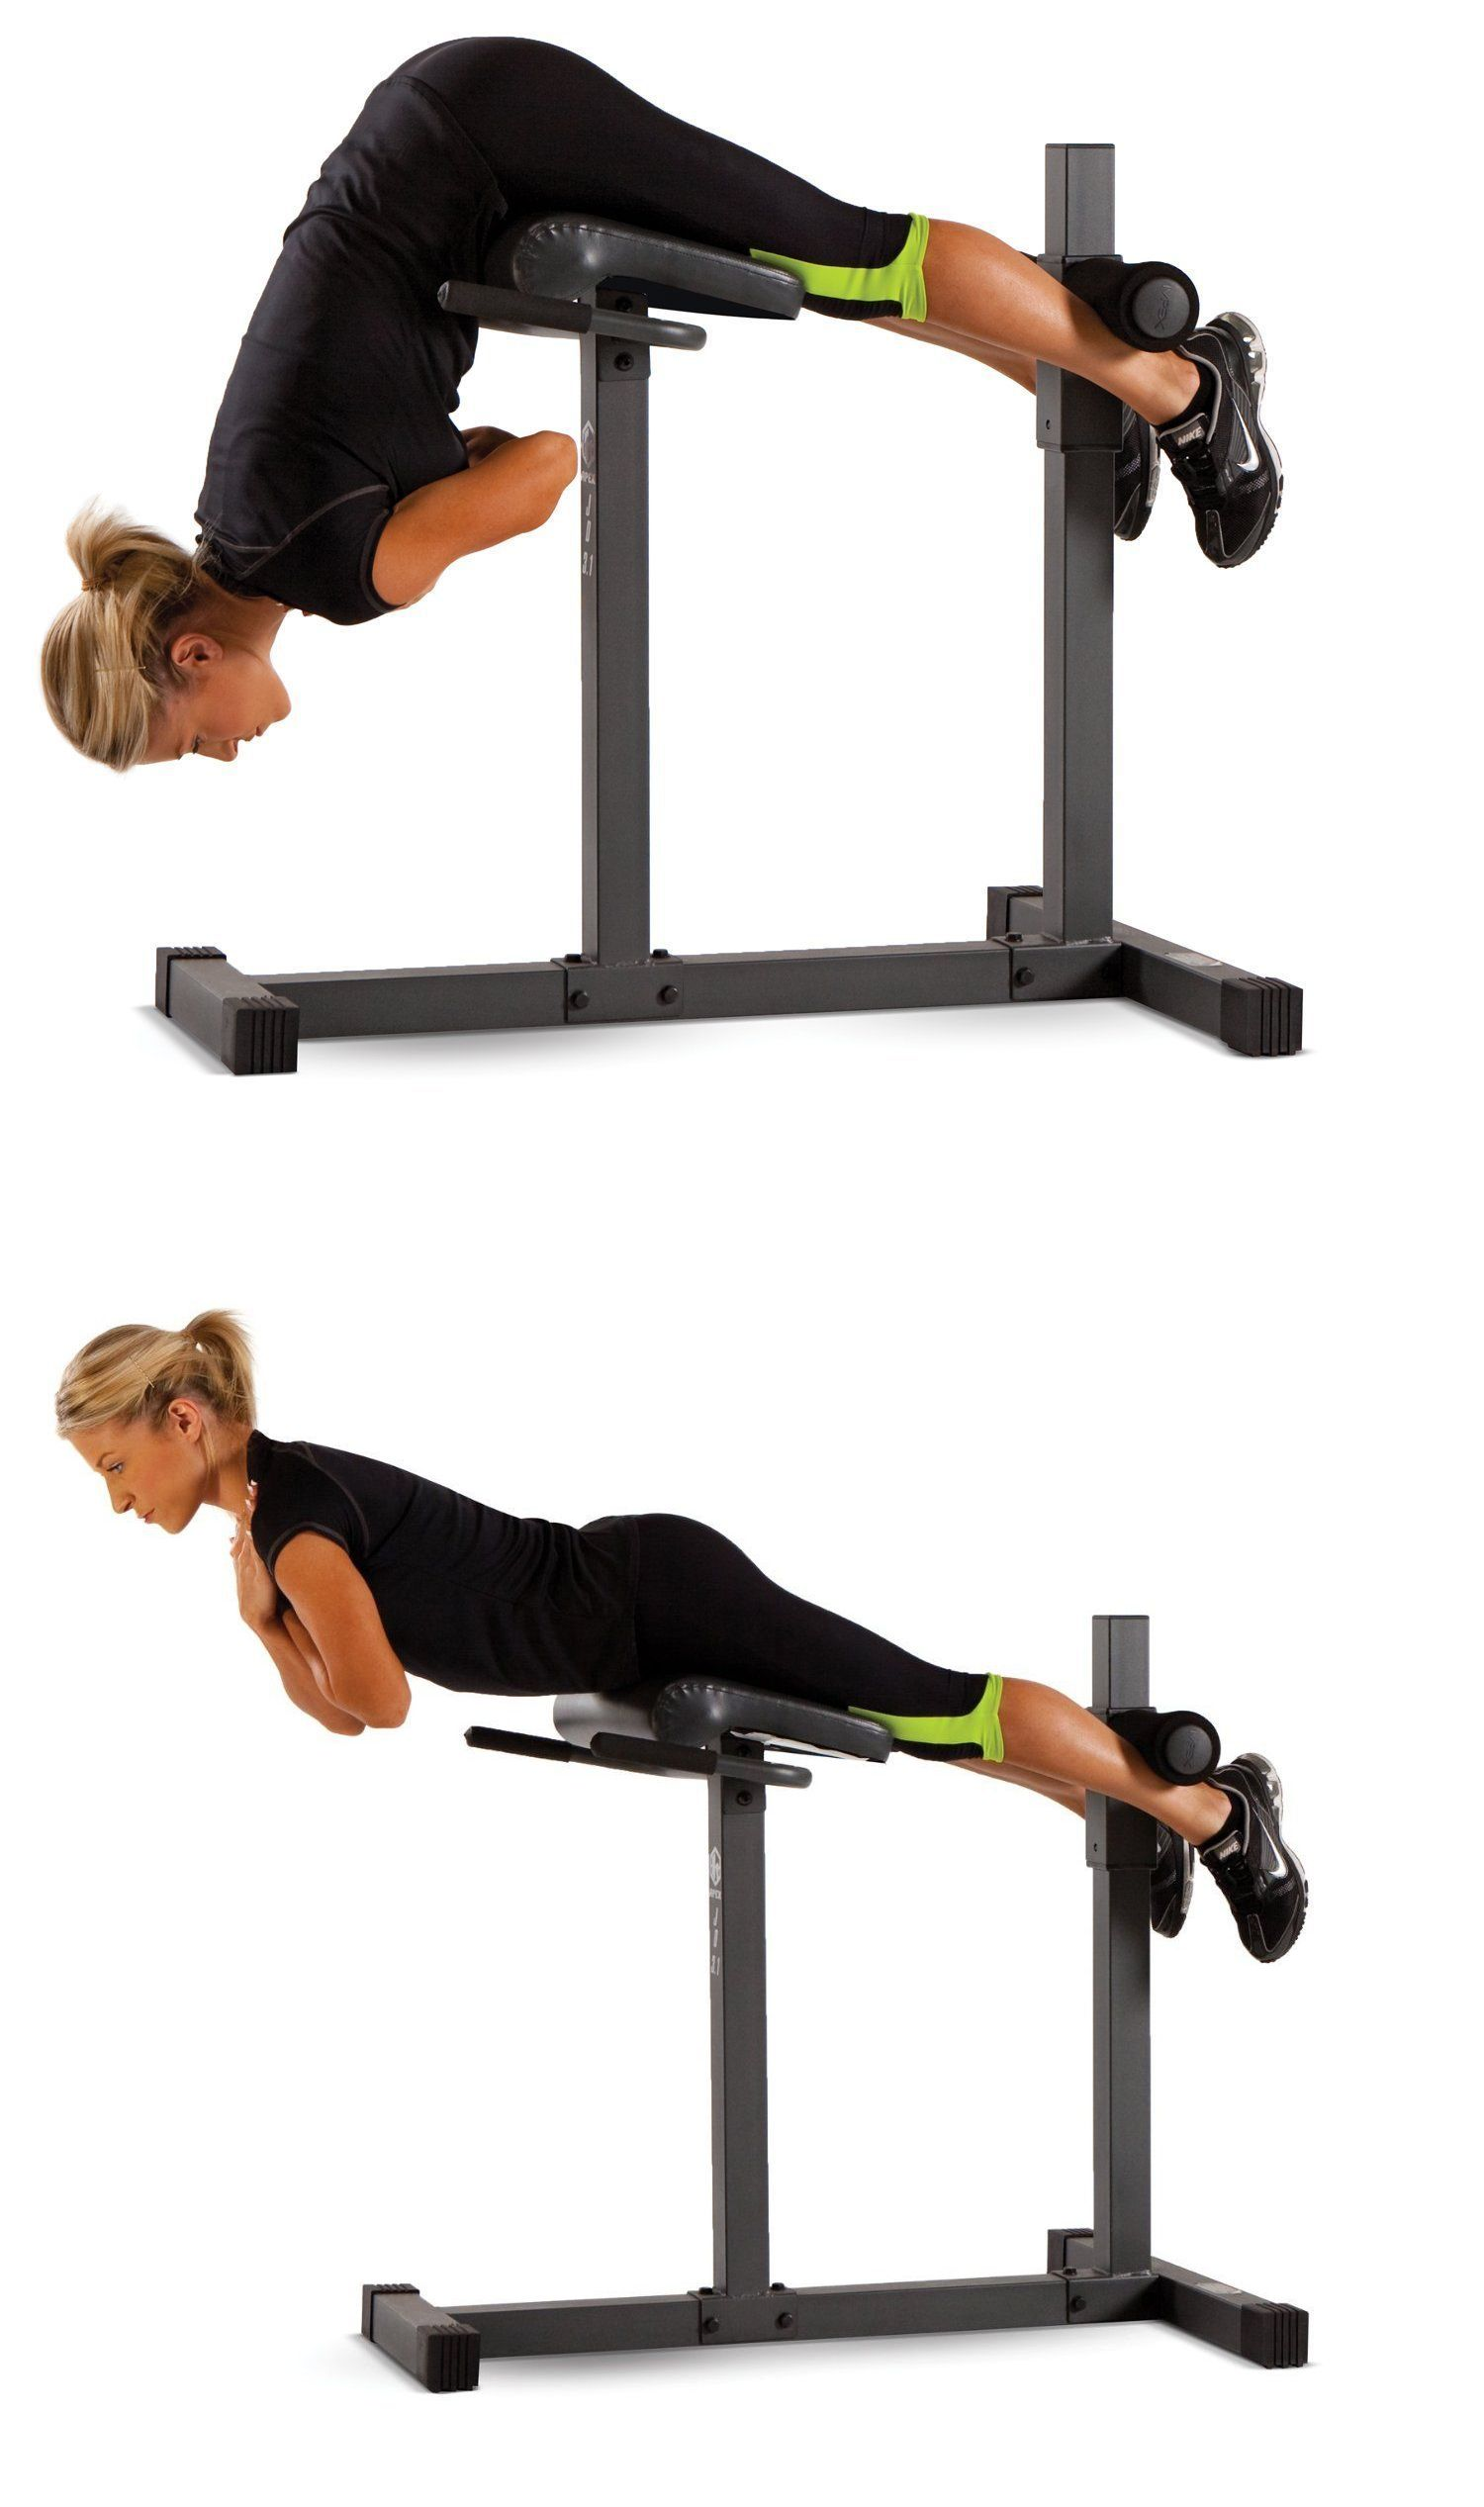 Abdominal Exercisers Ghd Machine Bench Hyperextension